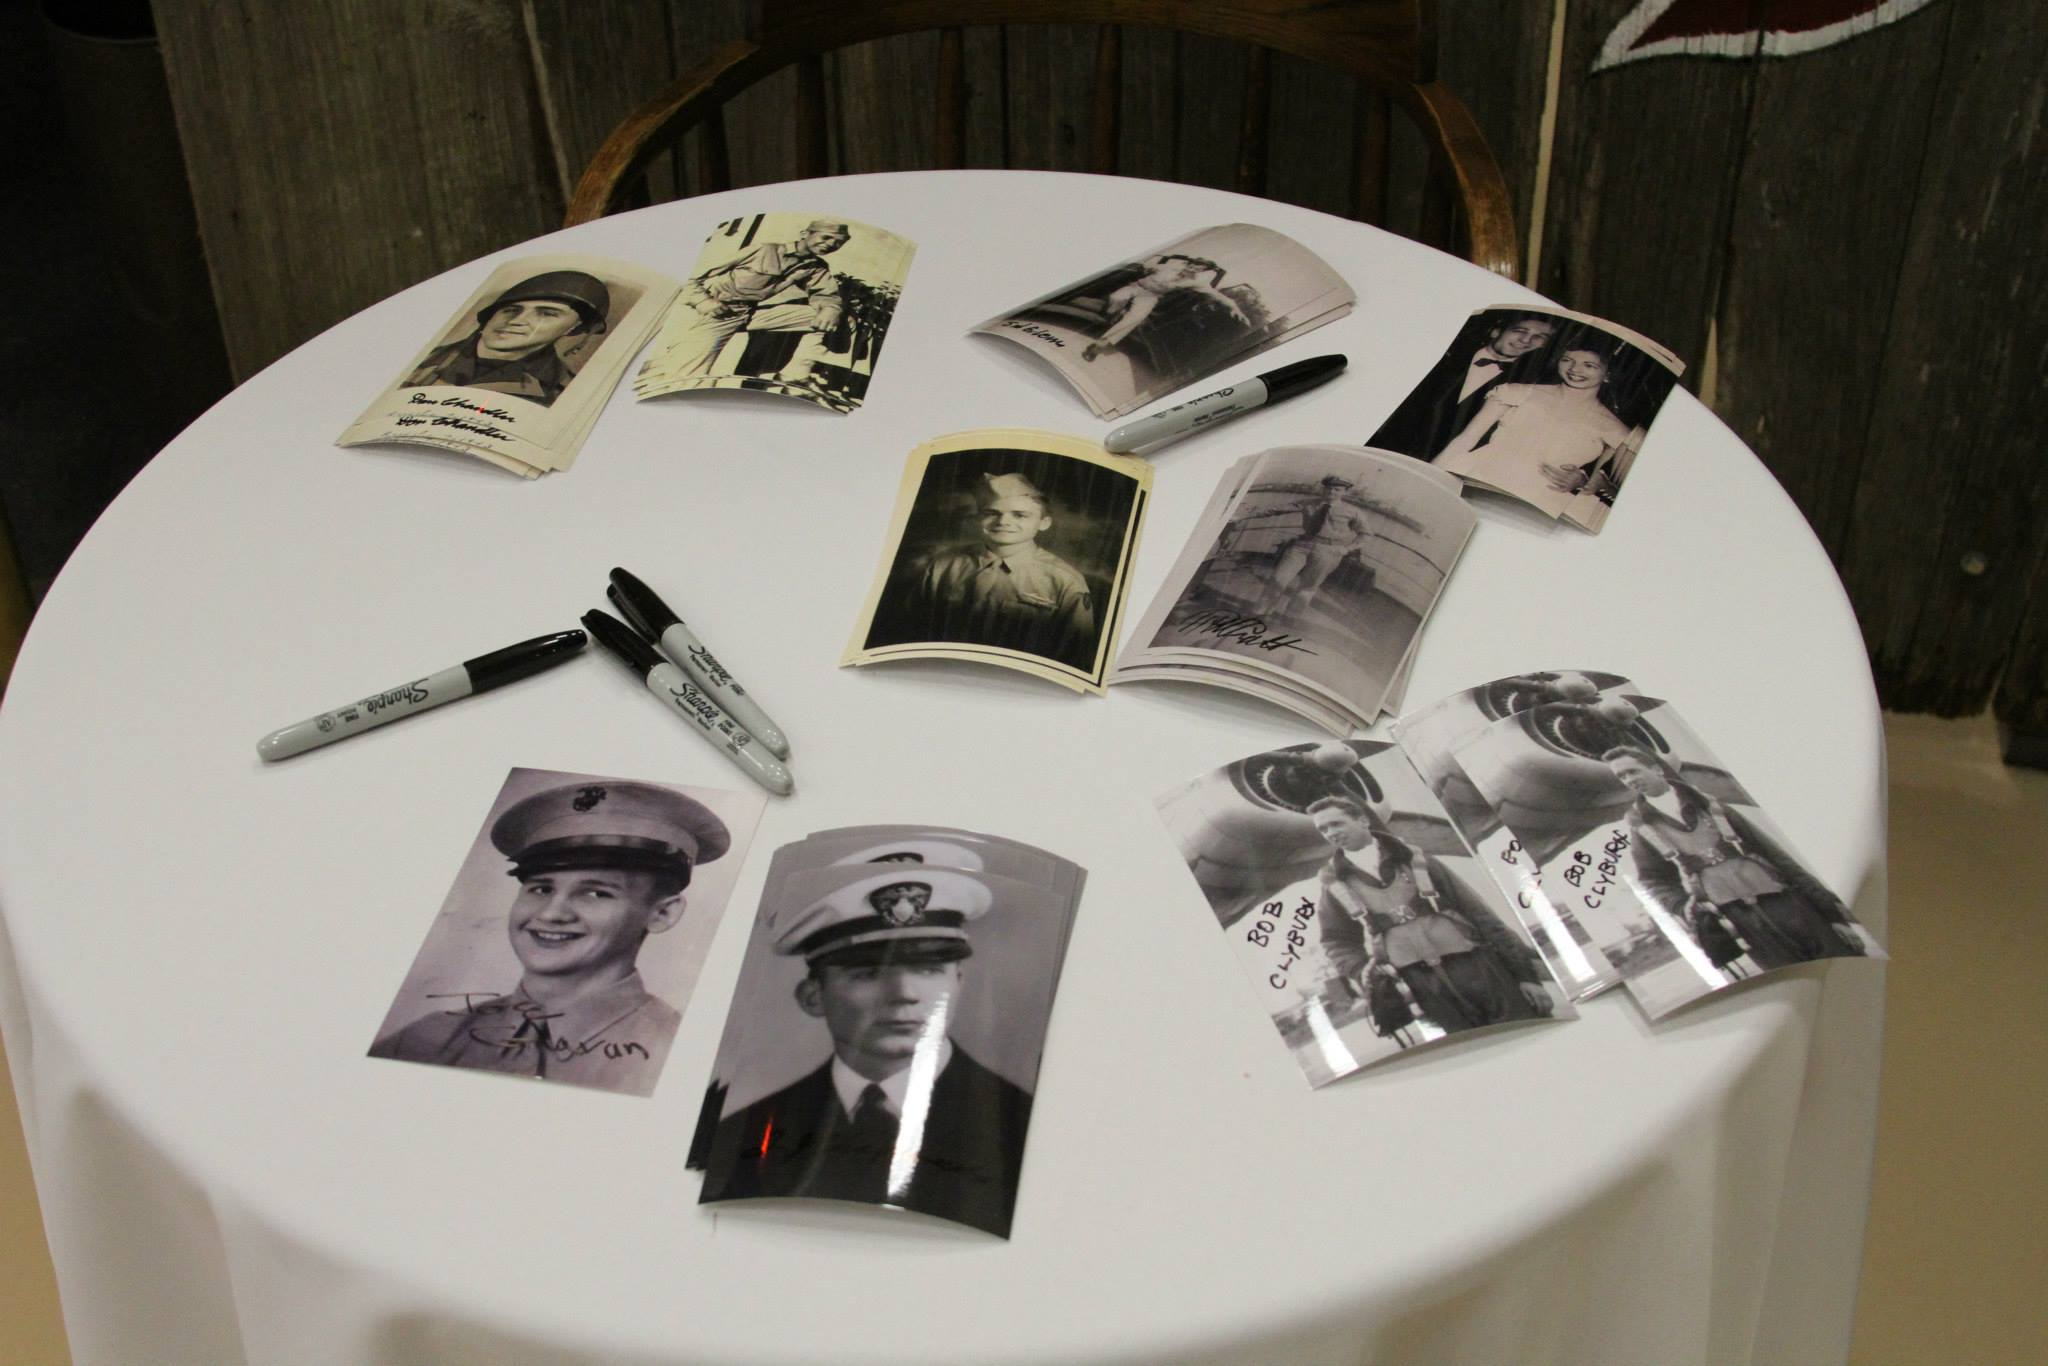 We had photos printed out for the veterans to sign, as souvenirs for the guests